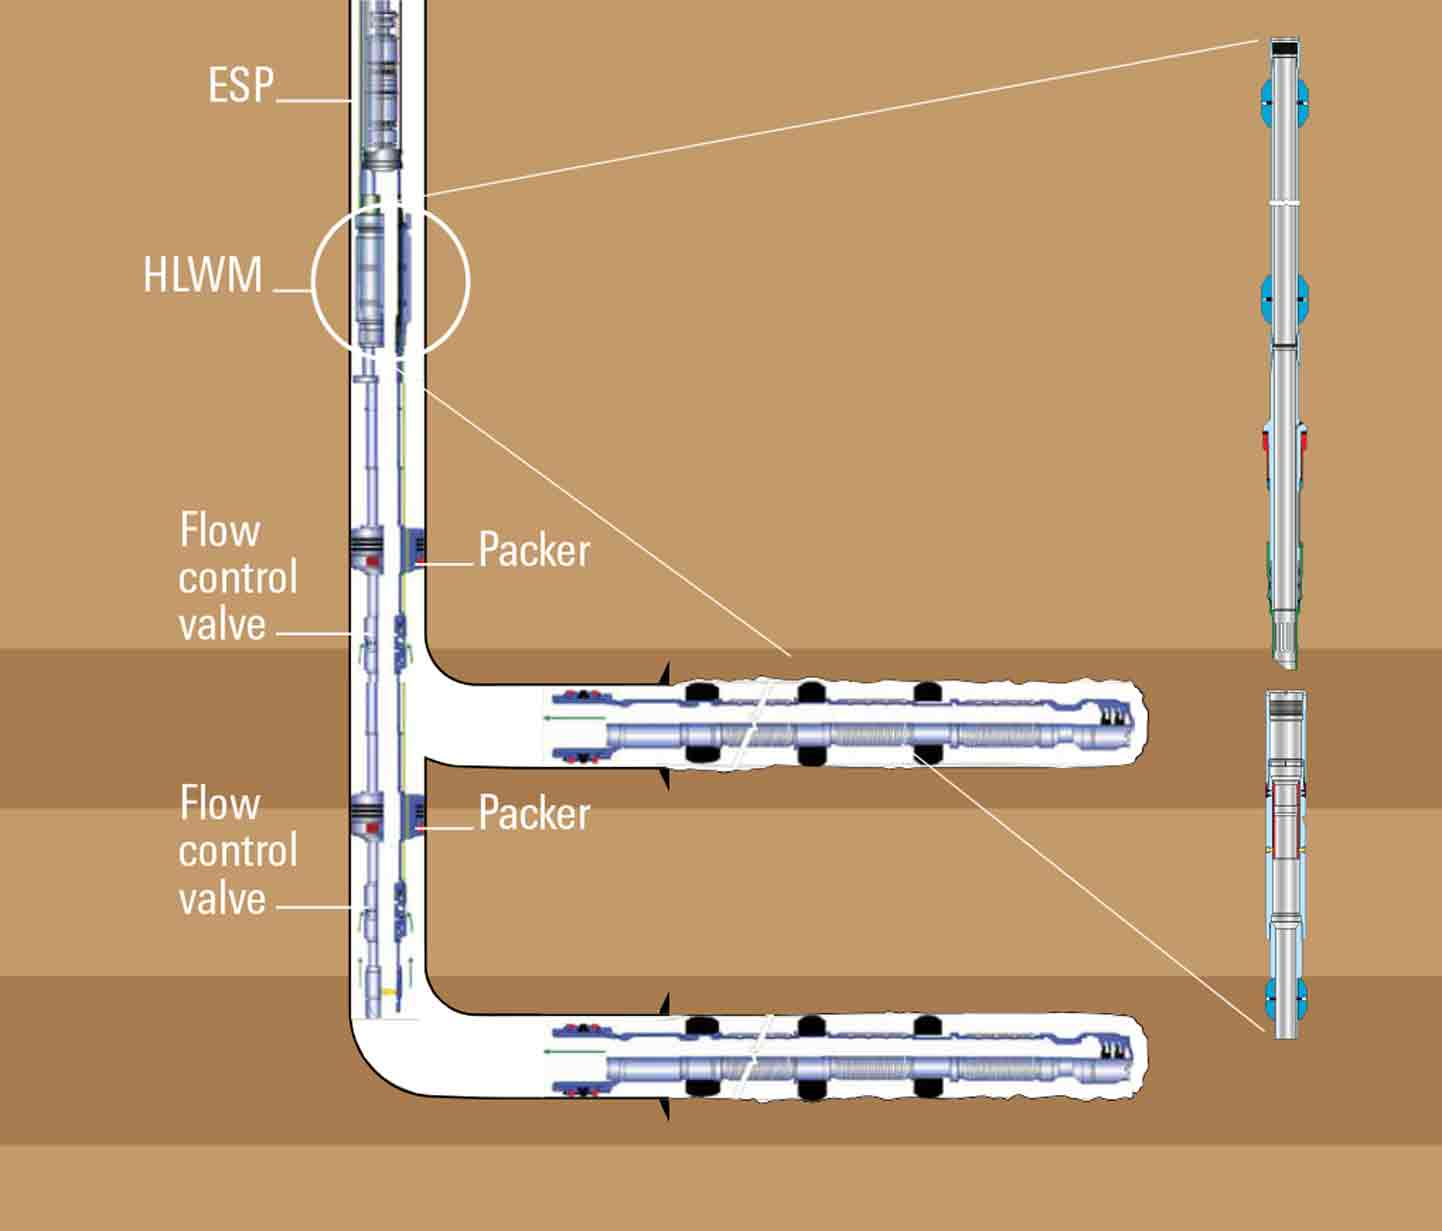 Schematic showing a hydraulic line wet-mate connector installed below an ESP and connected to two flow control valves in the lower completion.